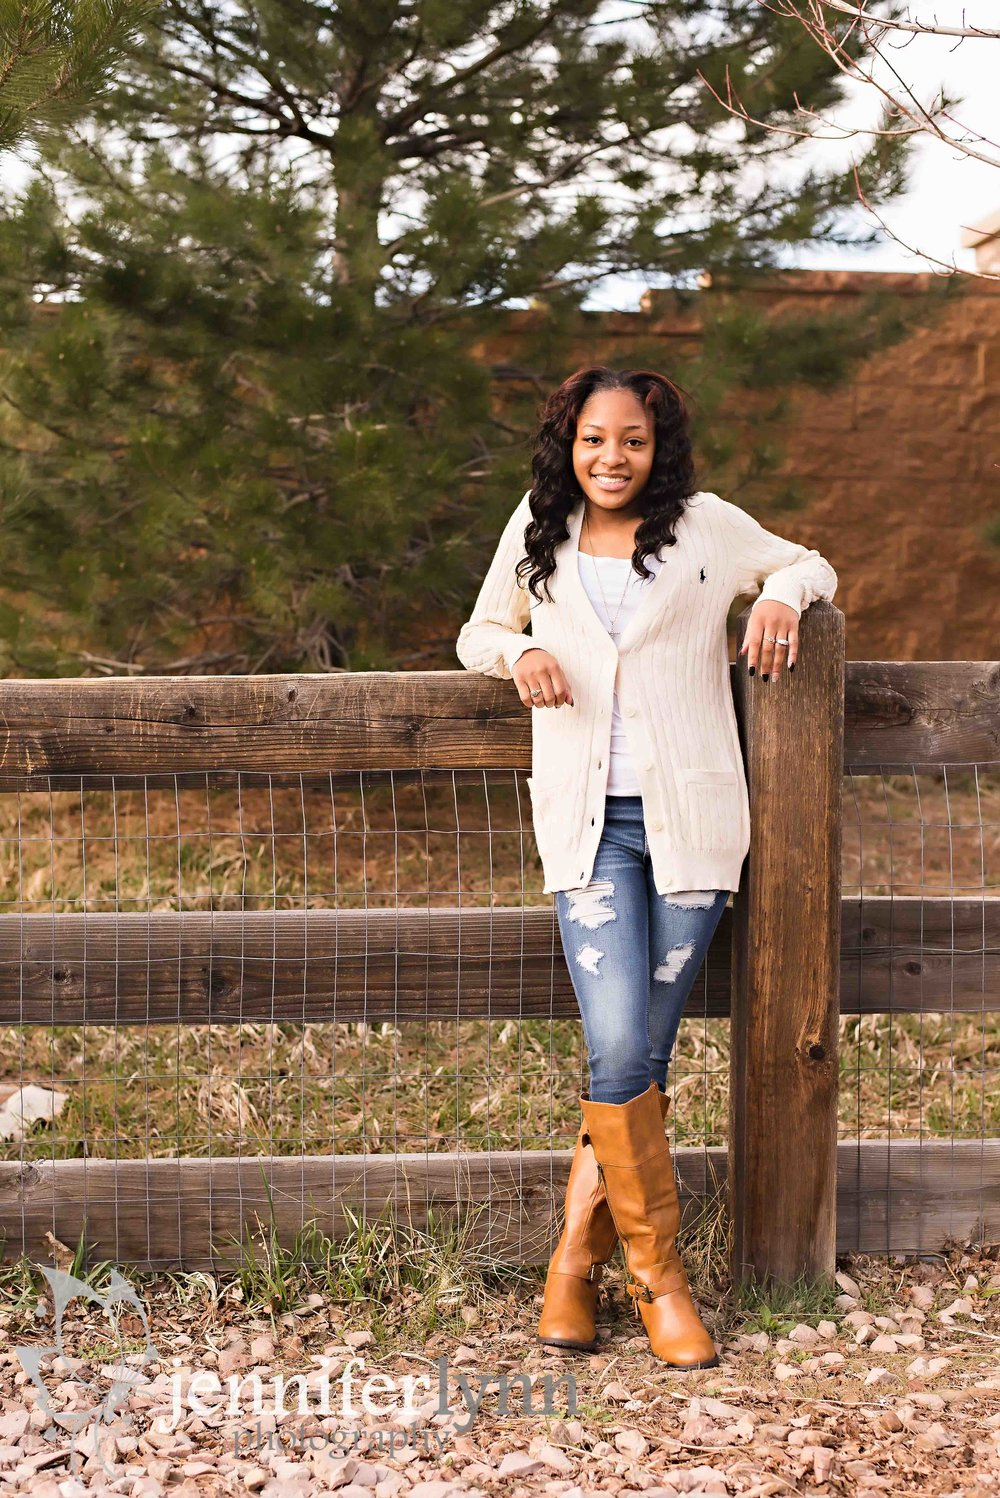 Senior Girl-Leaning on Rustic Fence